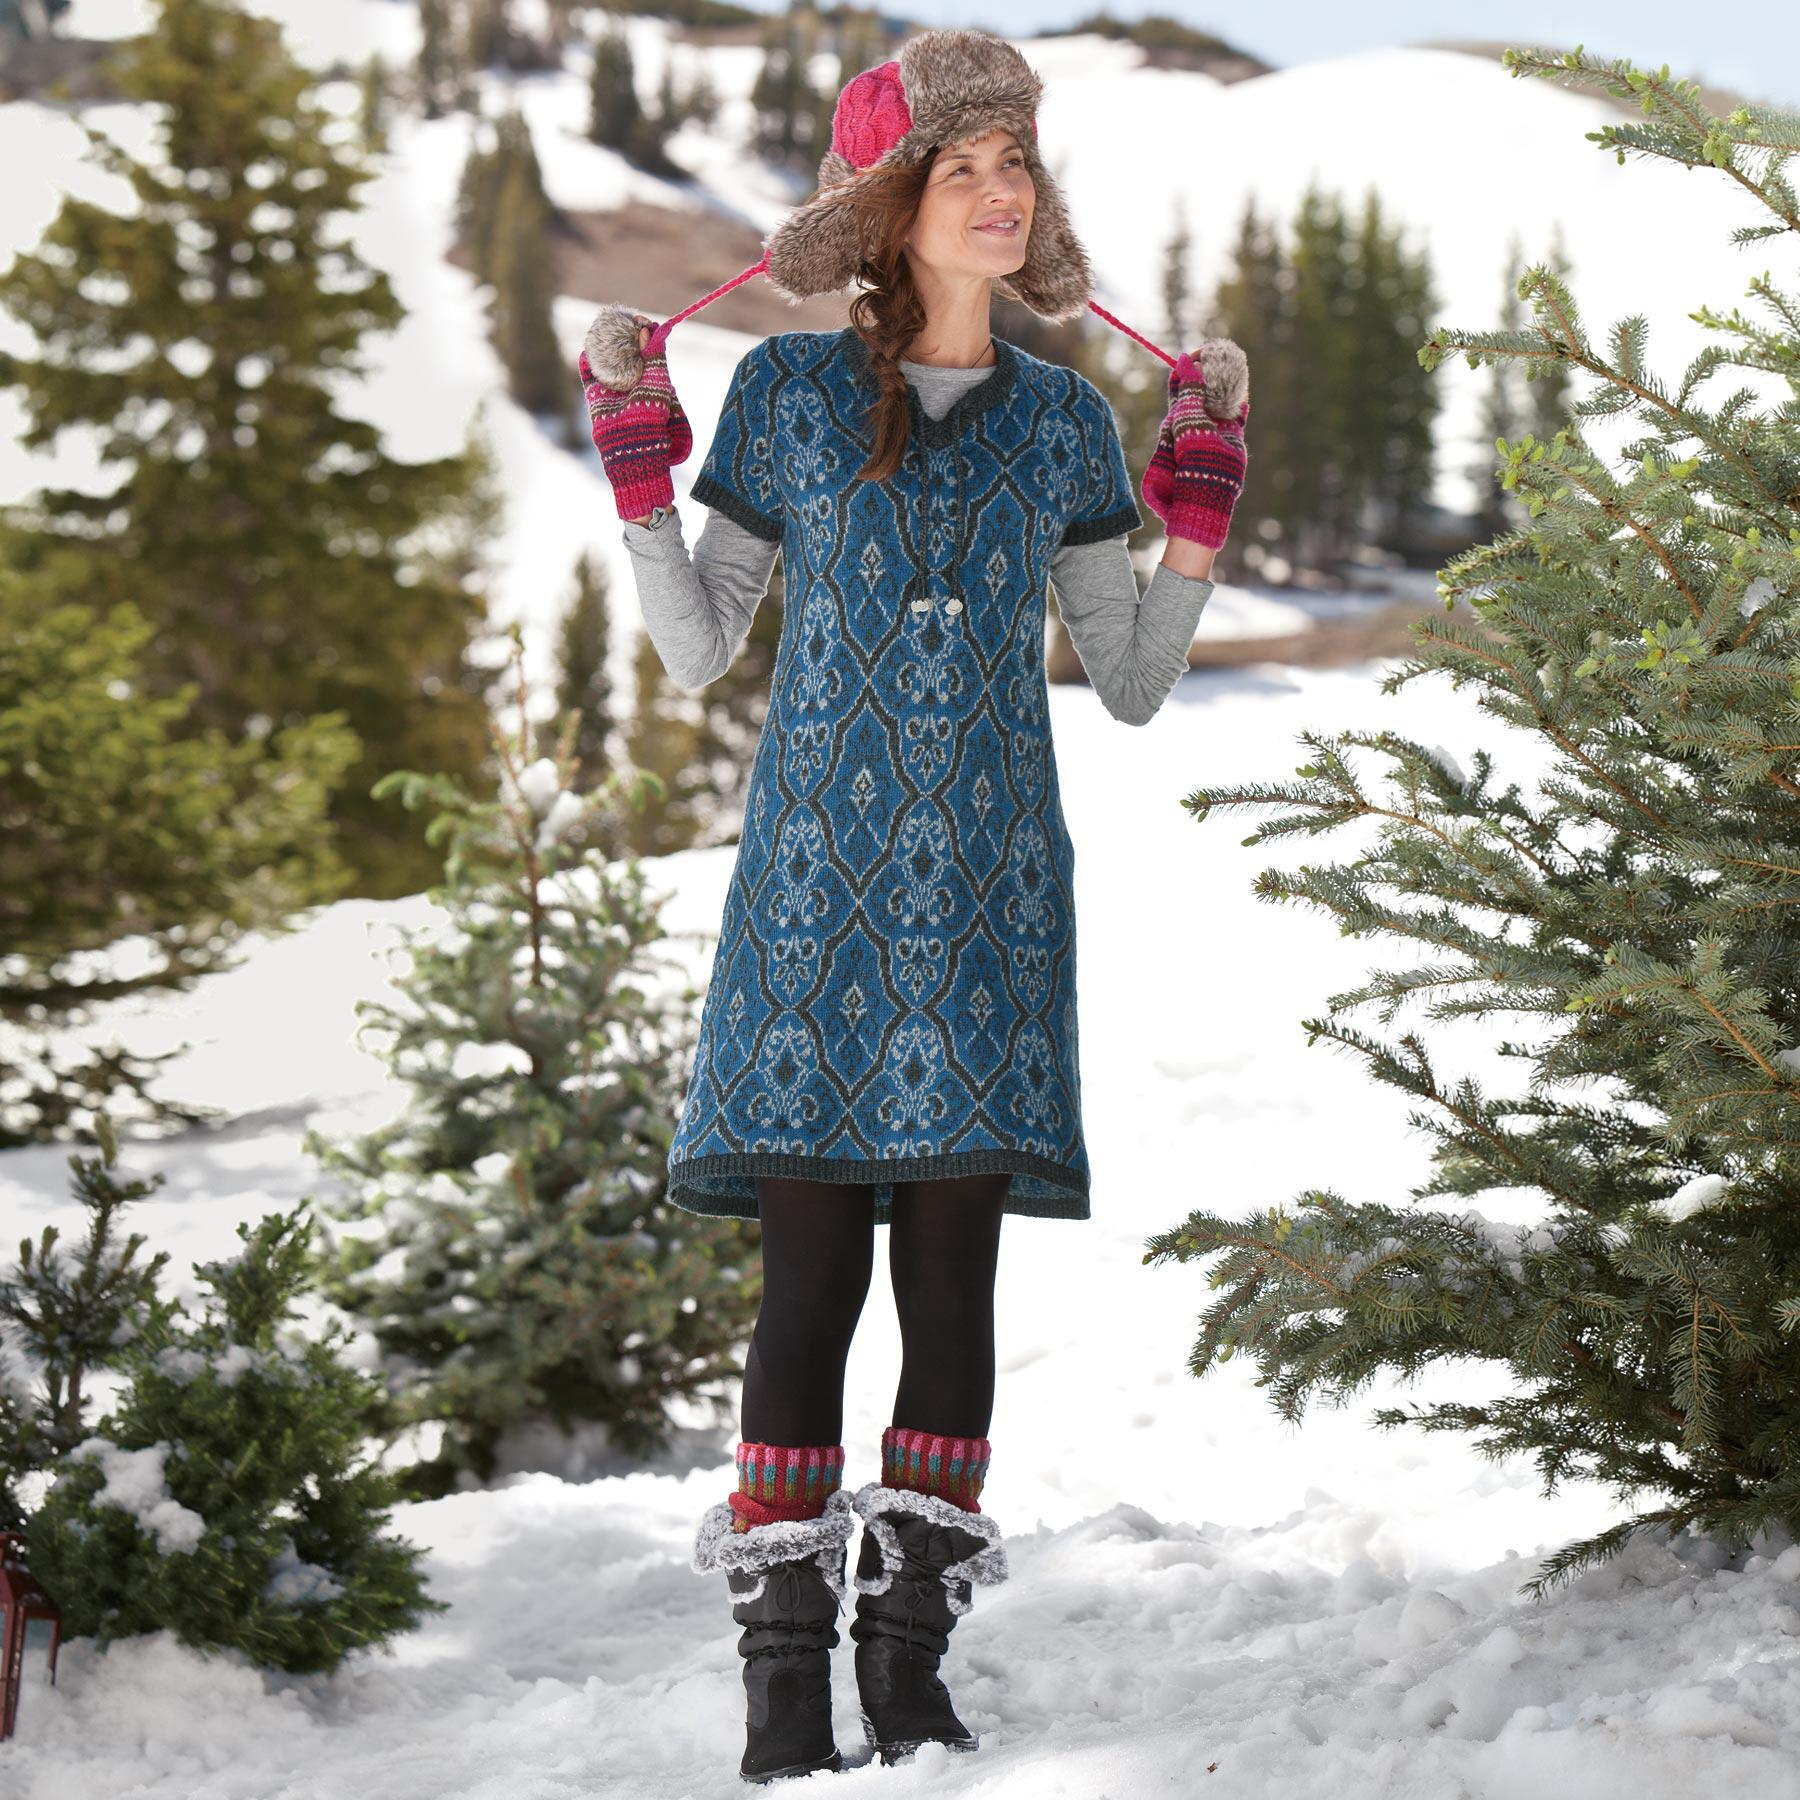 LAPLAND JACQUARD SWEATER DRESS  View 1 7ec7370561